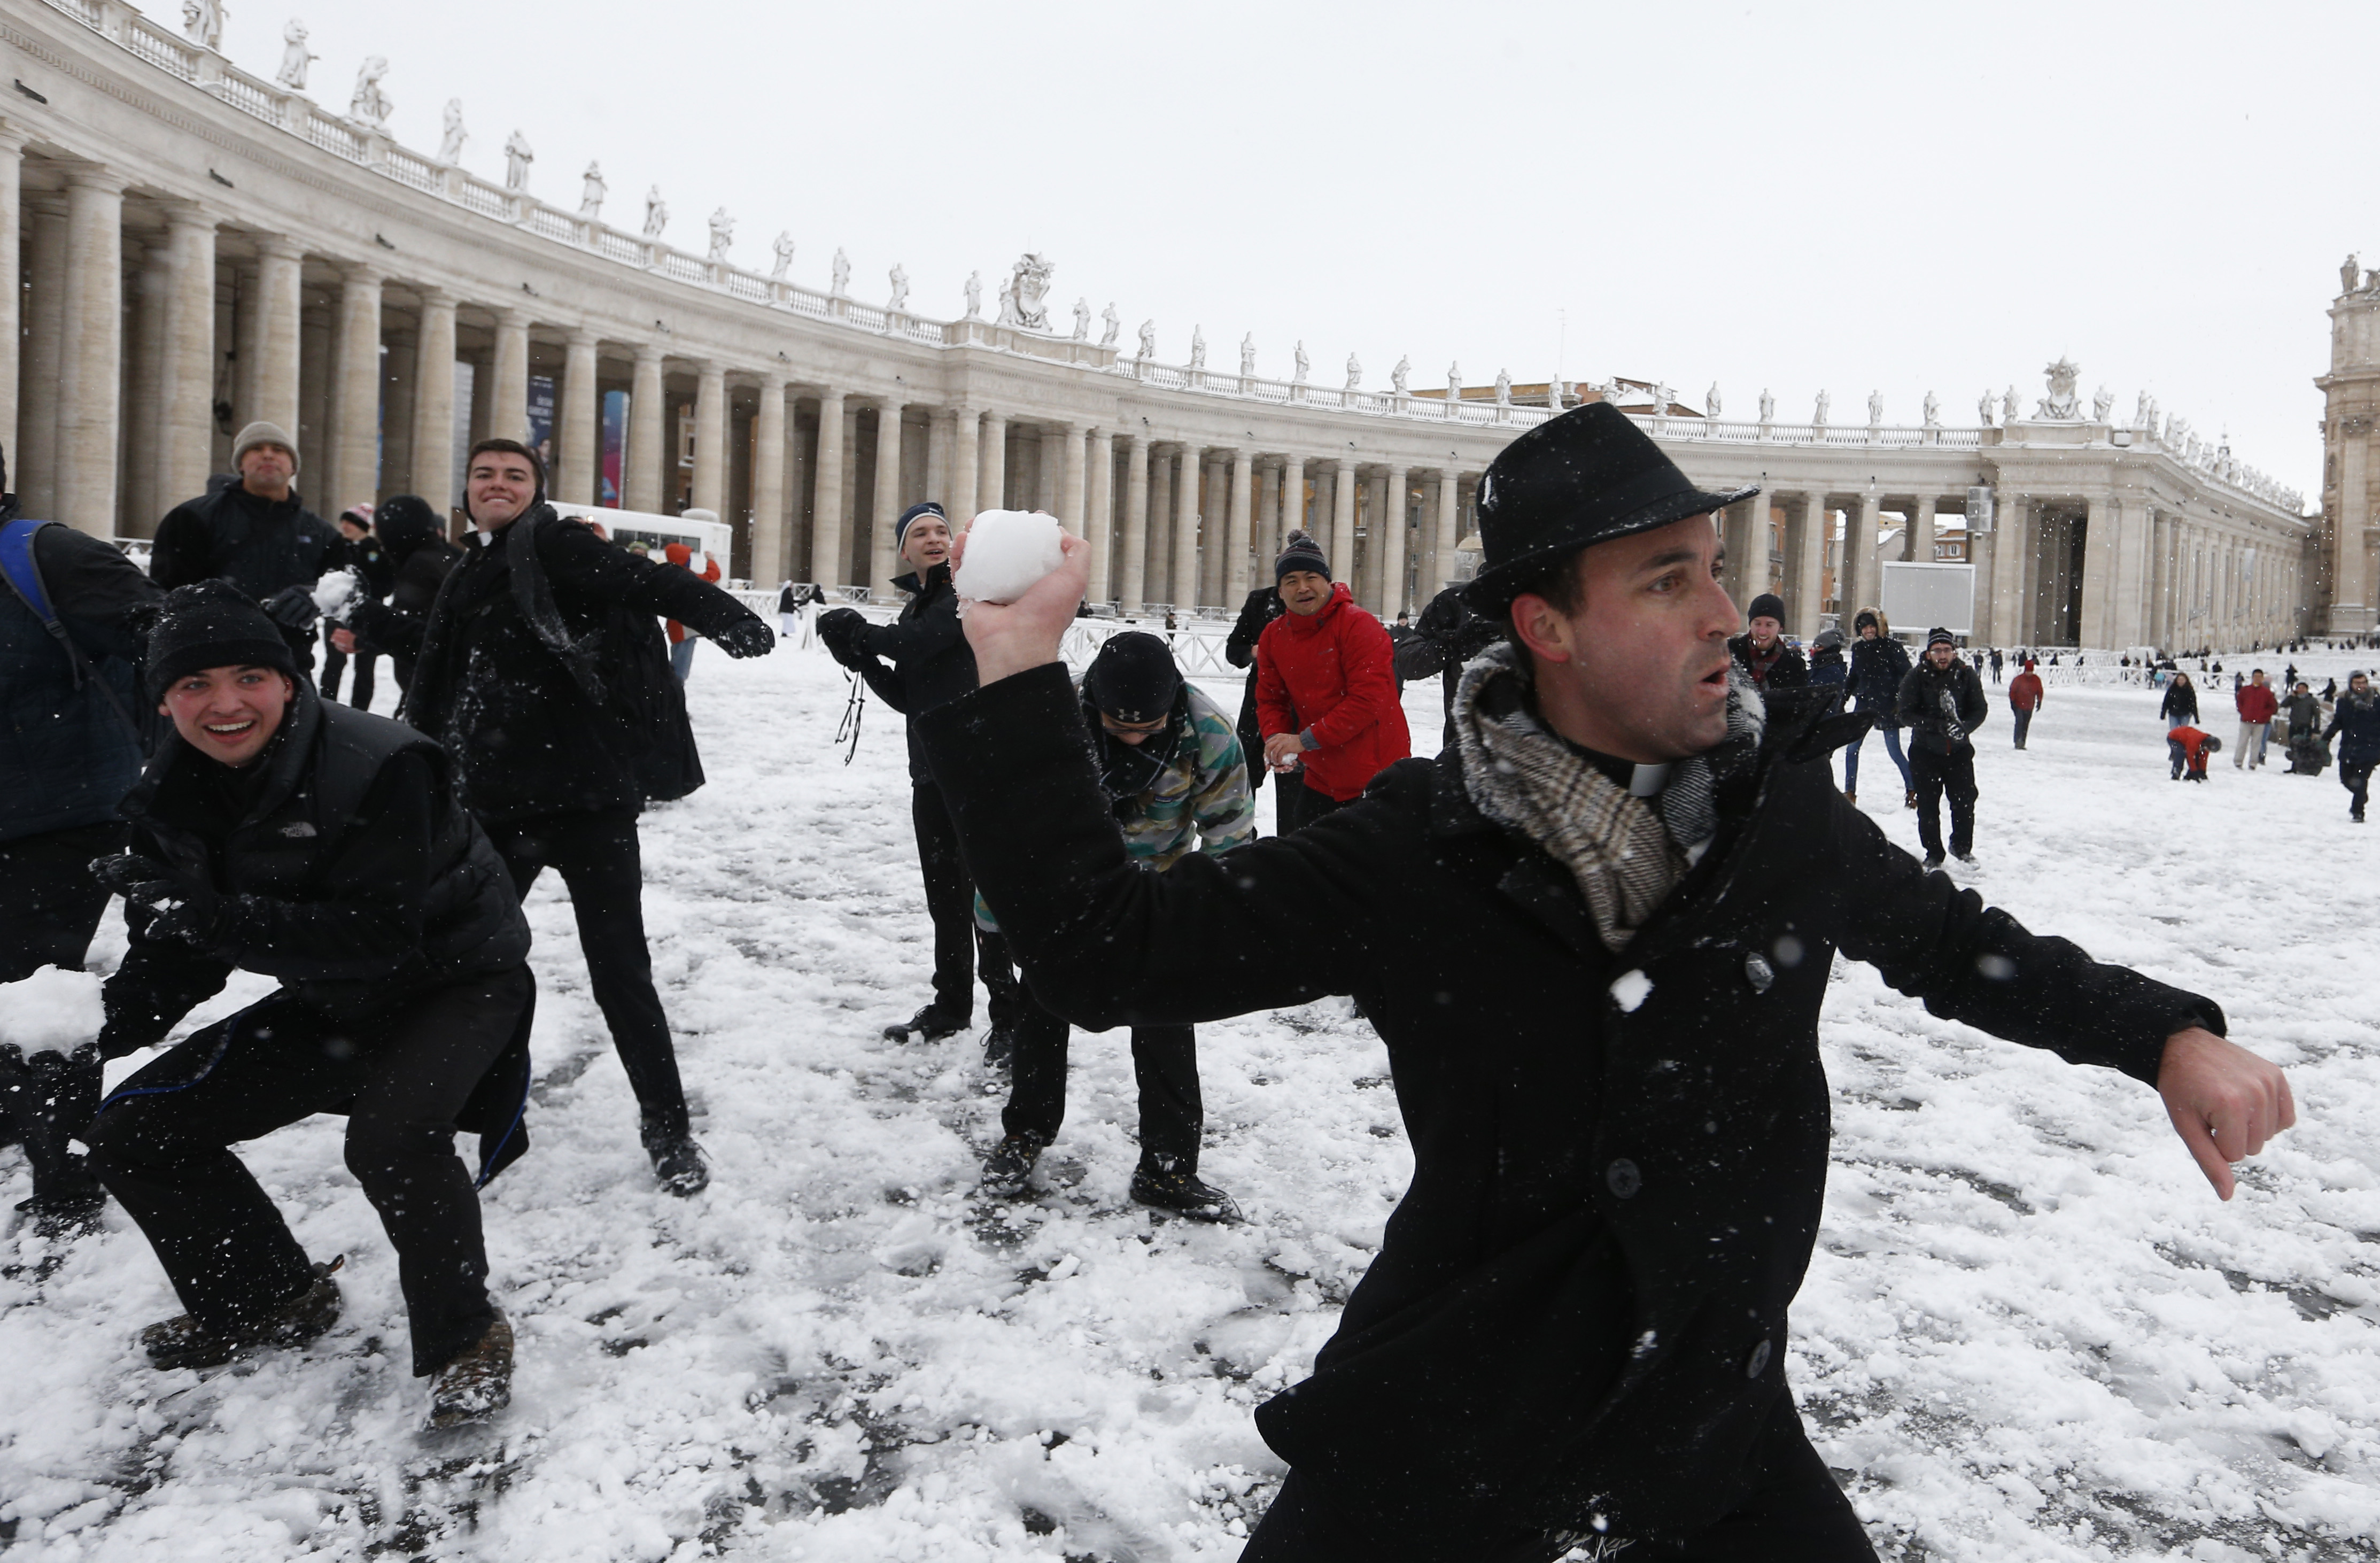 Father Robert Kilner, right, and seminarians from the Pontifical North American college engage in a snowball fight with their peers from the Venerable English College in St. Peter's Square at the Vatican after a rare snowfall Feb. 26. (CNS photo/Paul Haring)